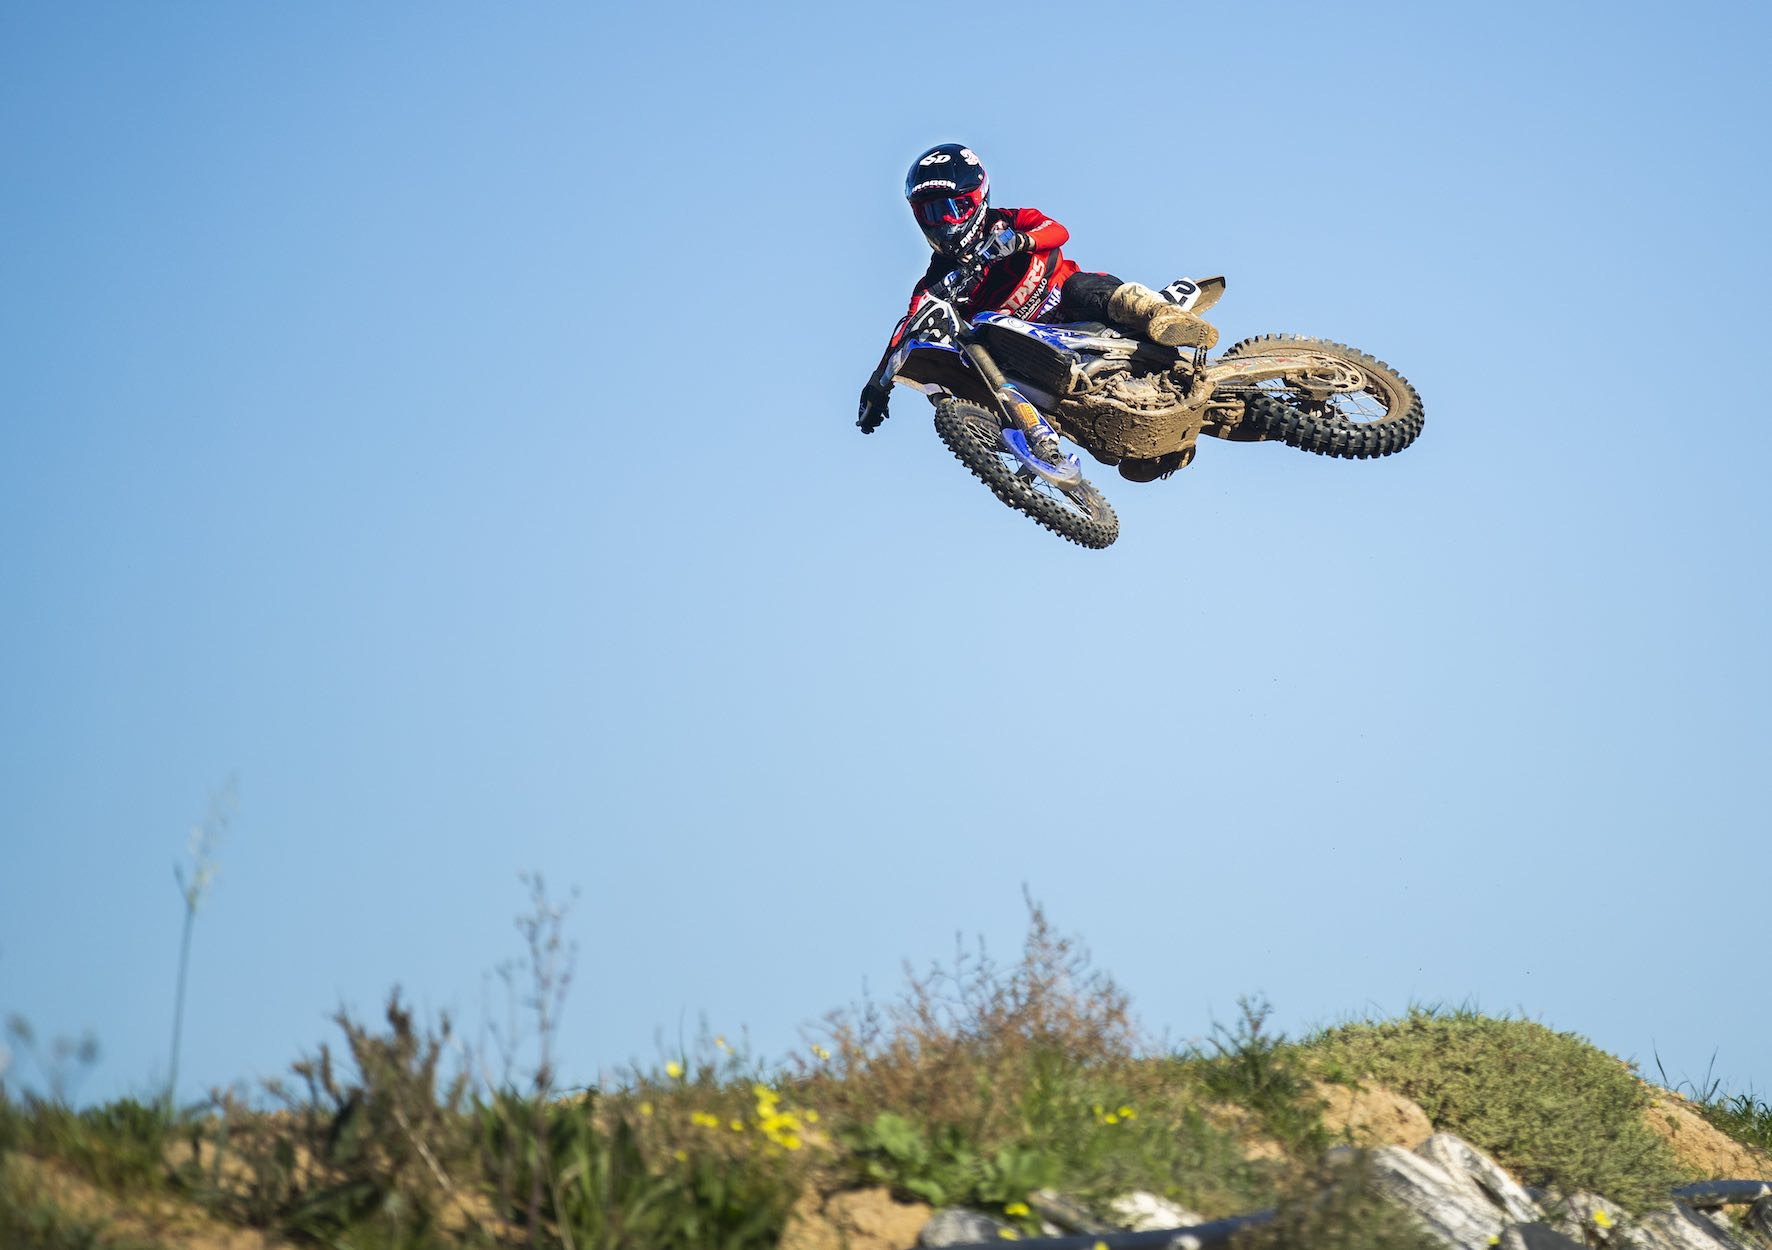 Interview with motocross racer Anthony Raynard